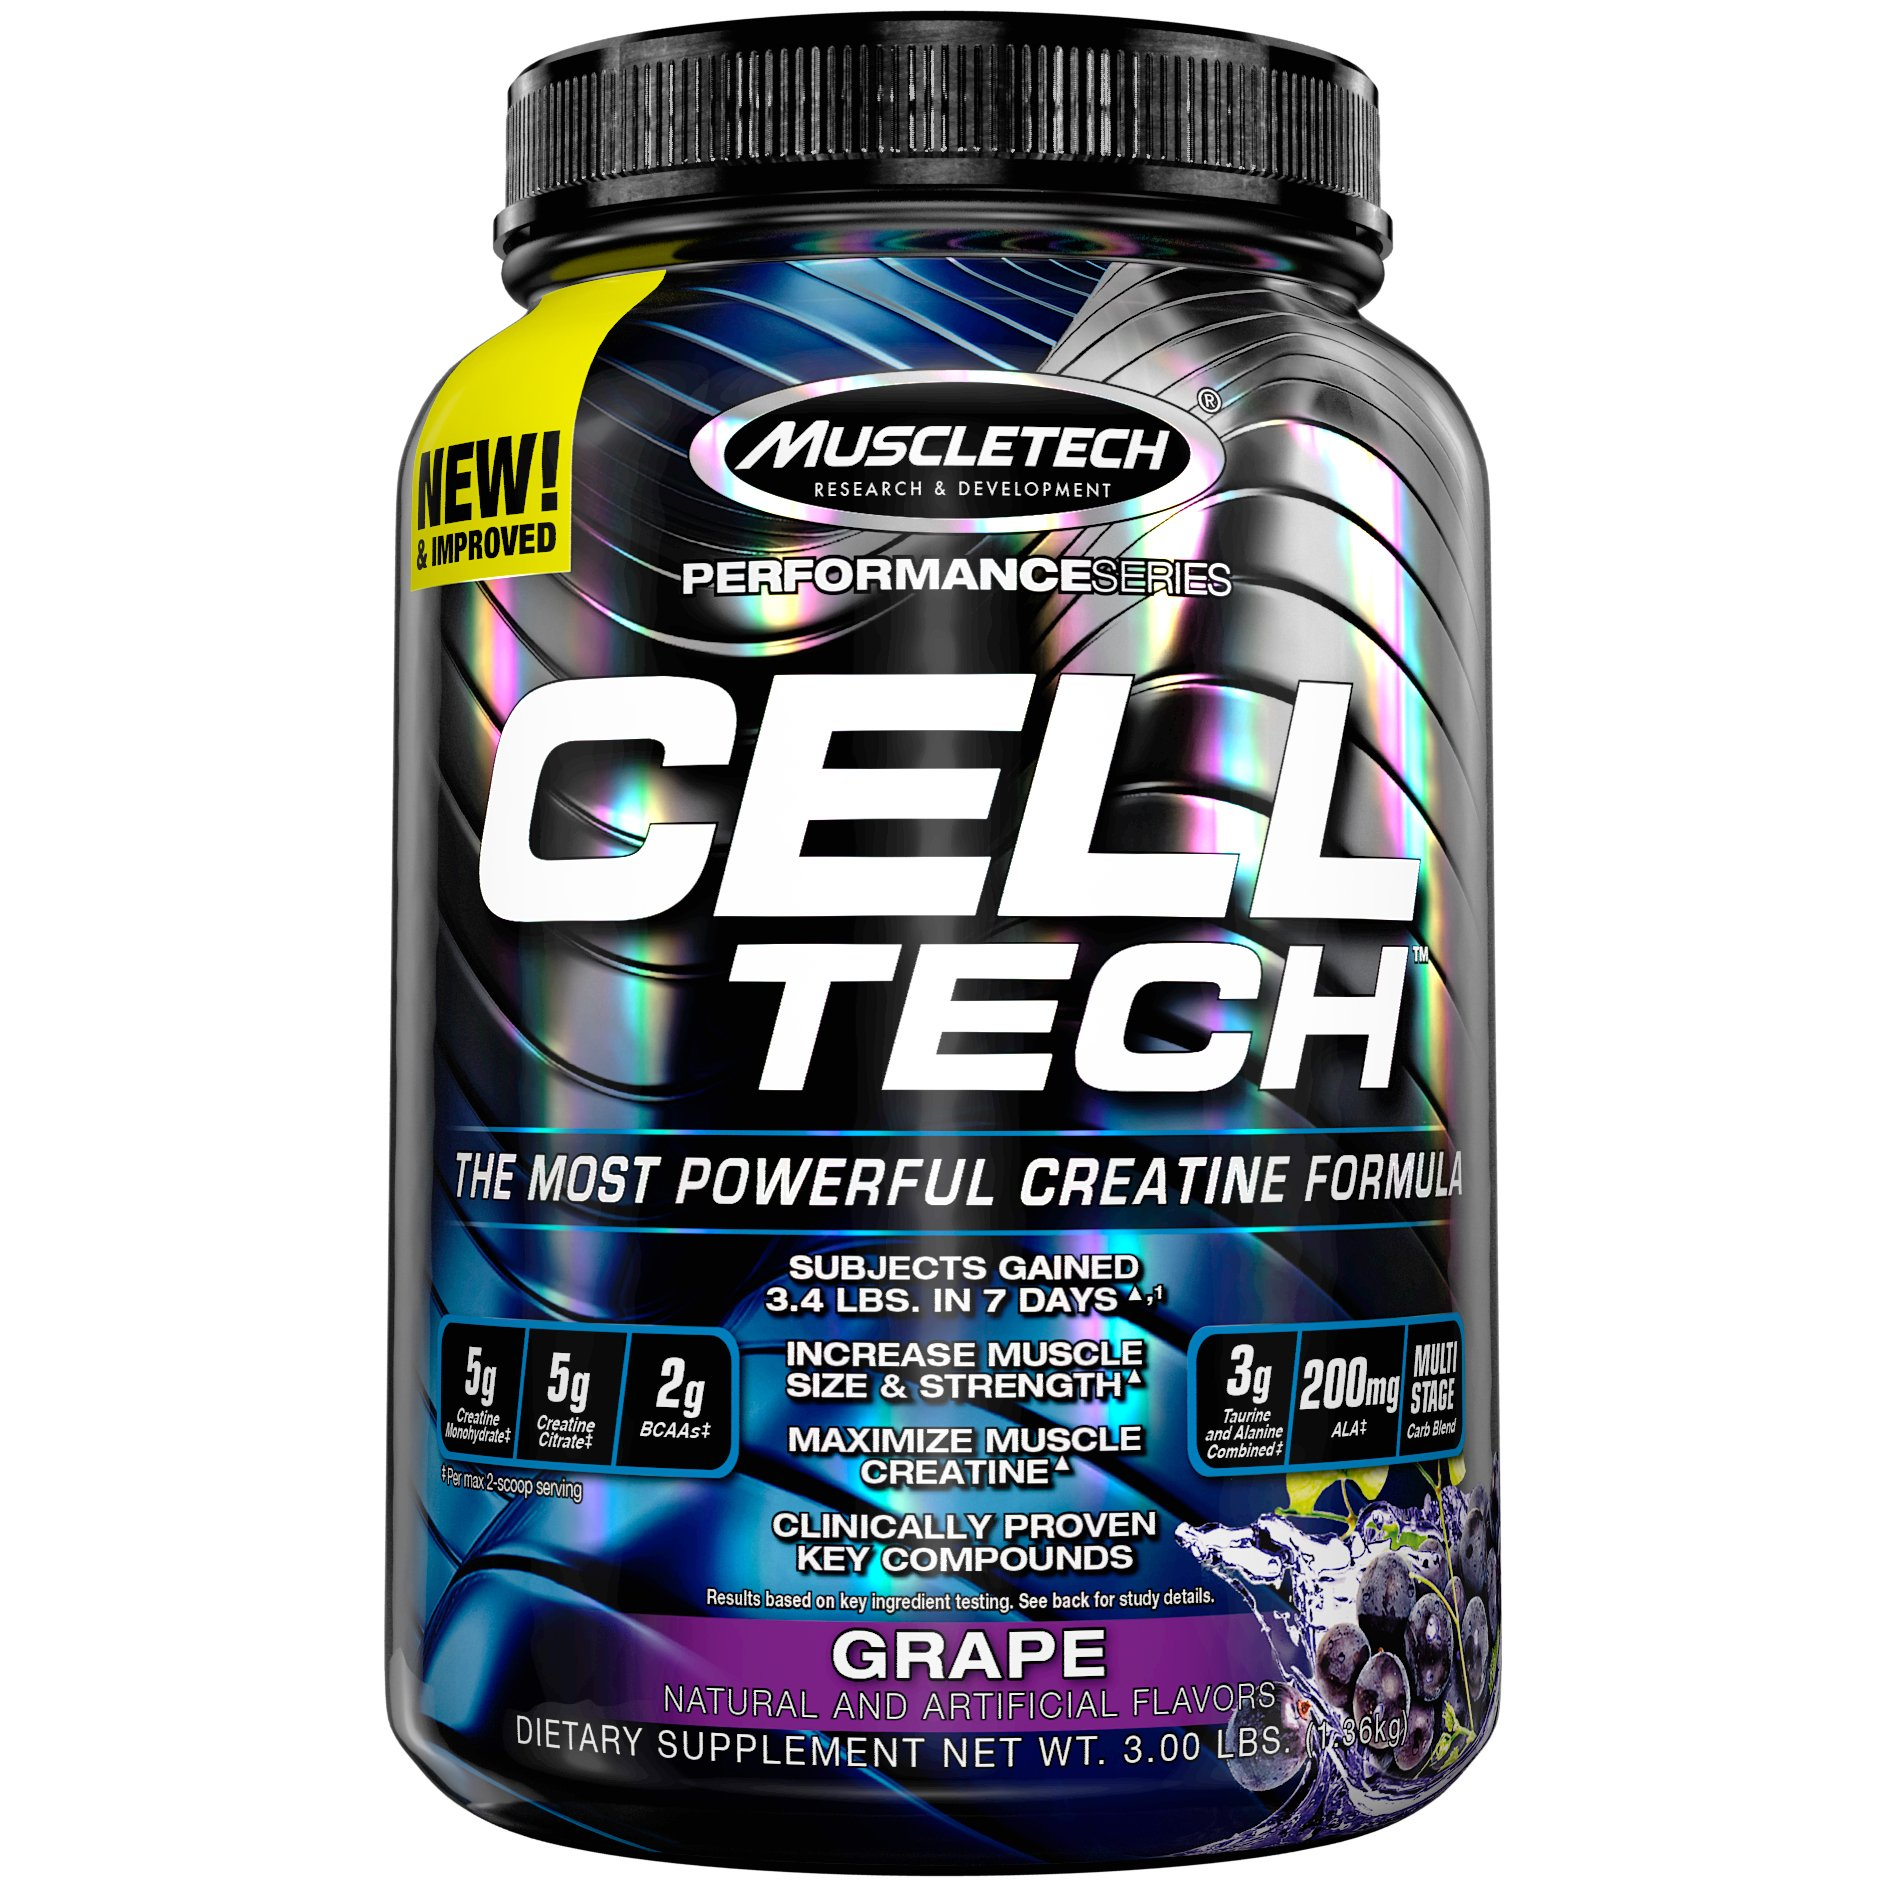 MuscleTech Cell Tech Creatine Monohydrate Formula Powder, HPLC-Certified, Improved Muscle Growth & Recovery, Grape, 30 Servings (3.09lbs)